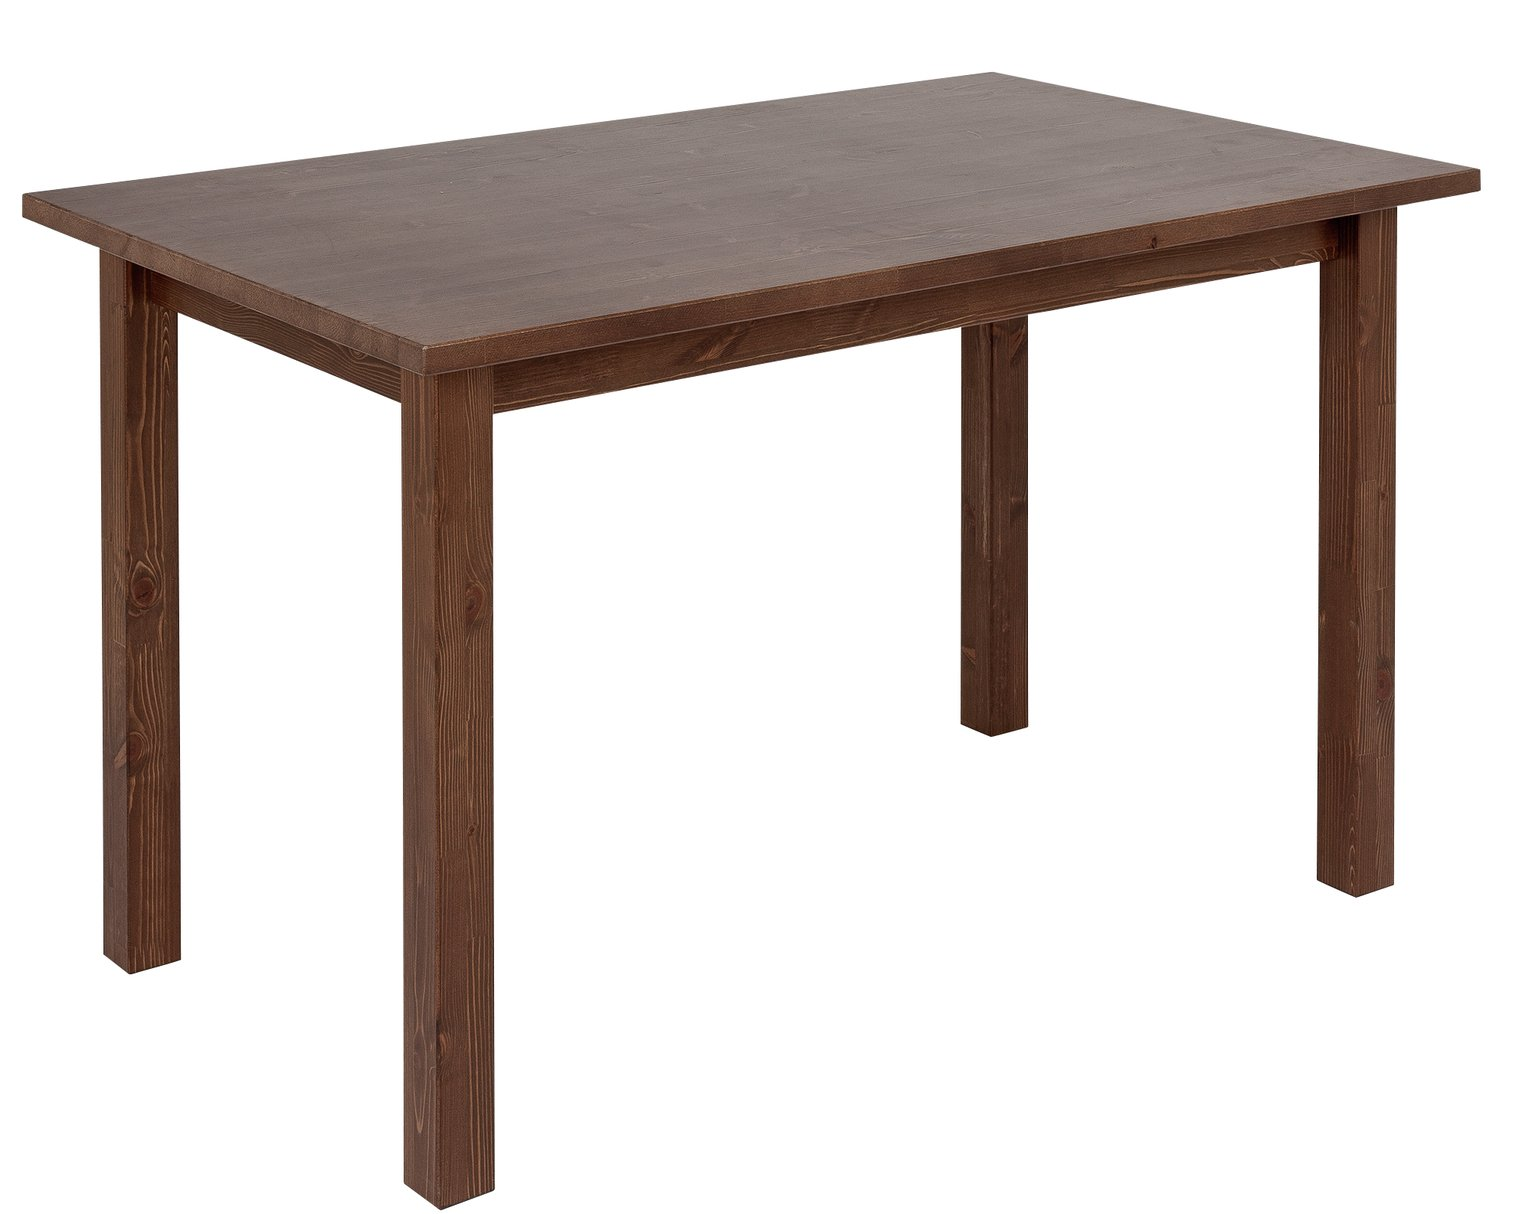 Argos Home Ashdon Solid Pine 4 Seater Dining Table   Walnut